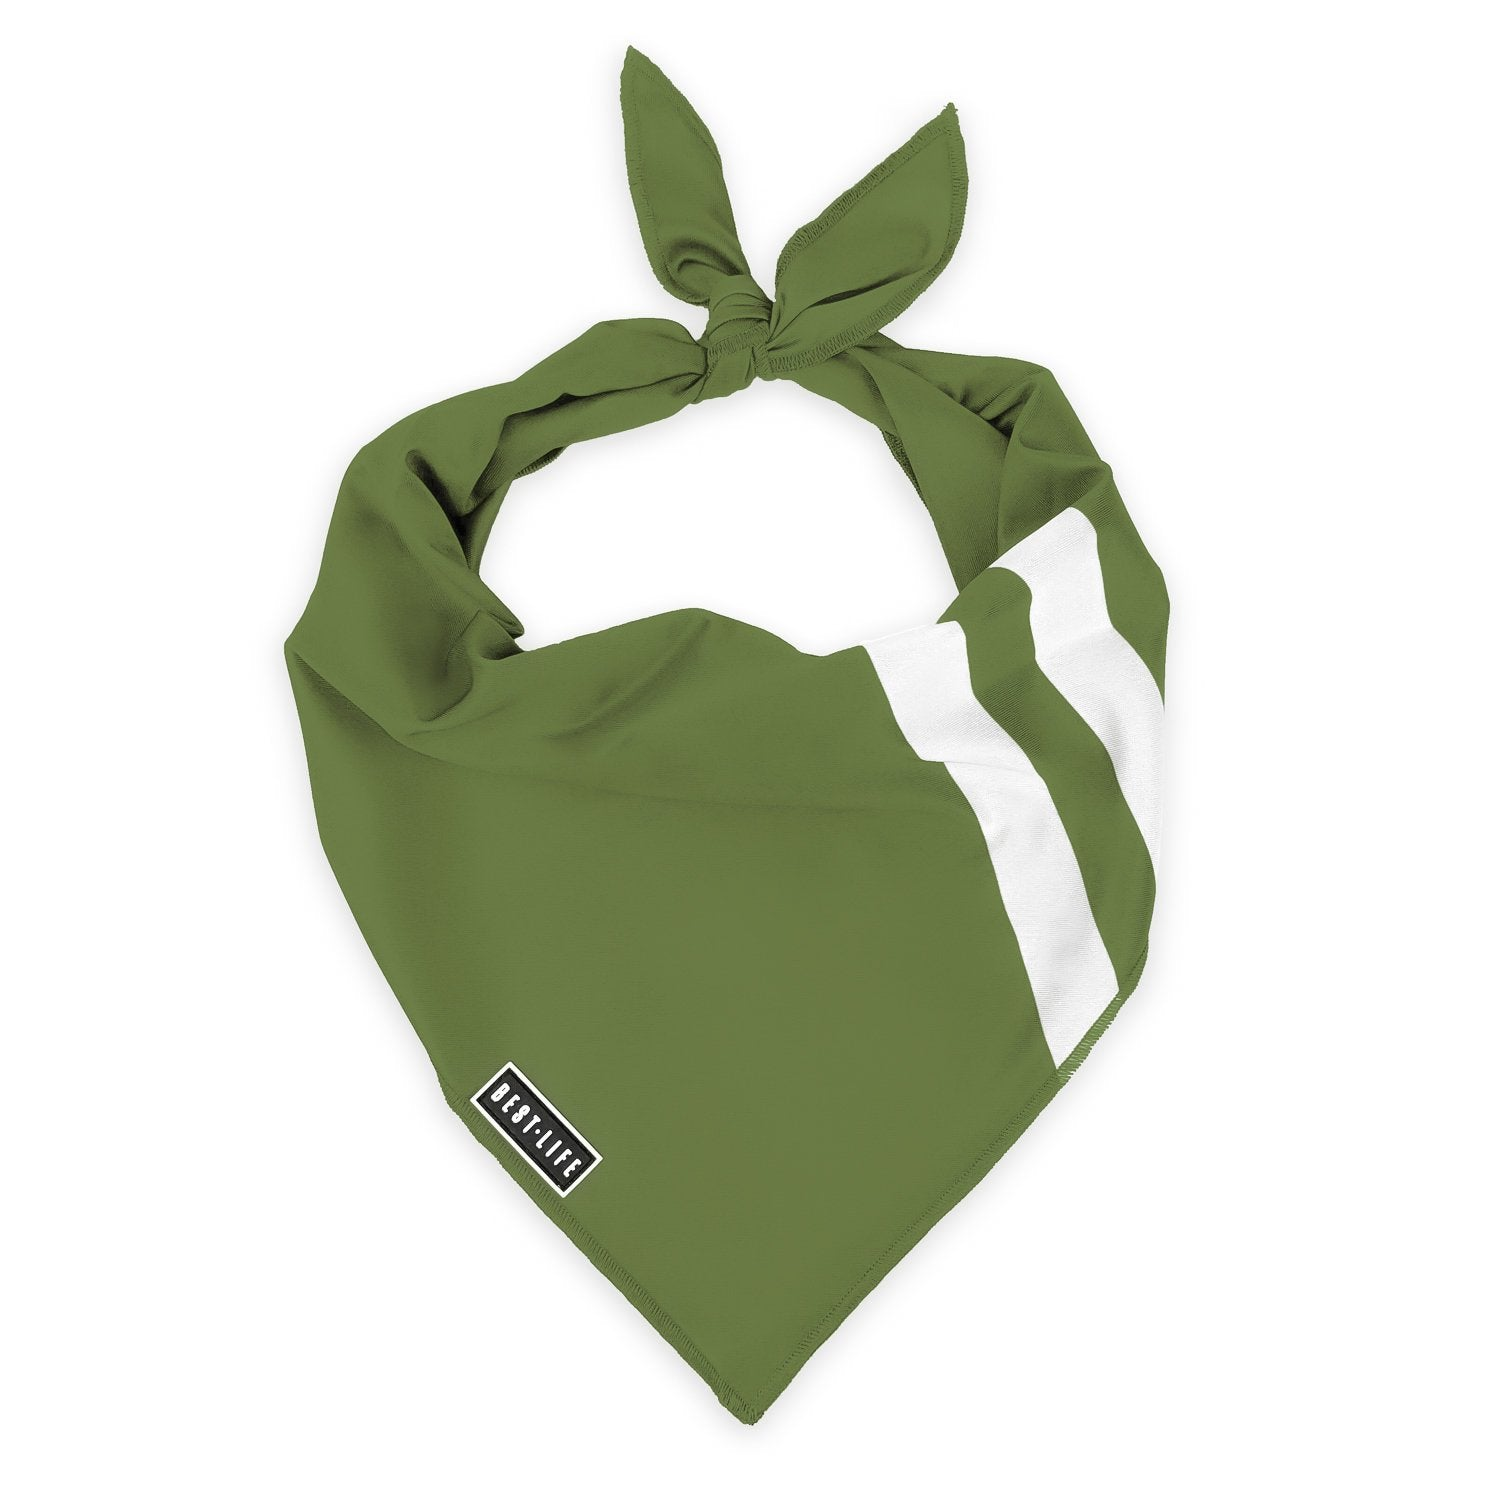 Awesome Olive - Bandana bandana Best Life Leashes | The Leash For Rescue Dogs